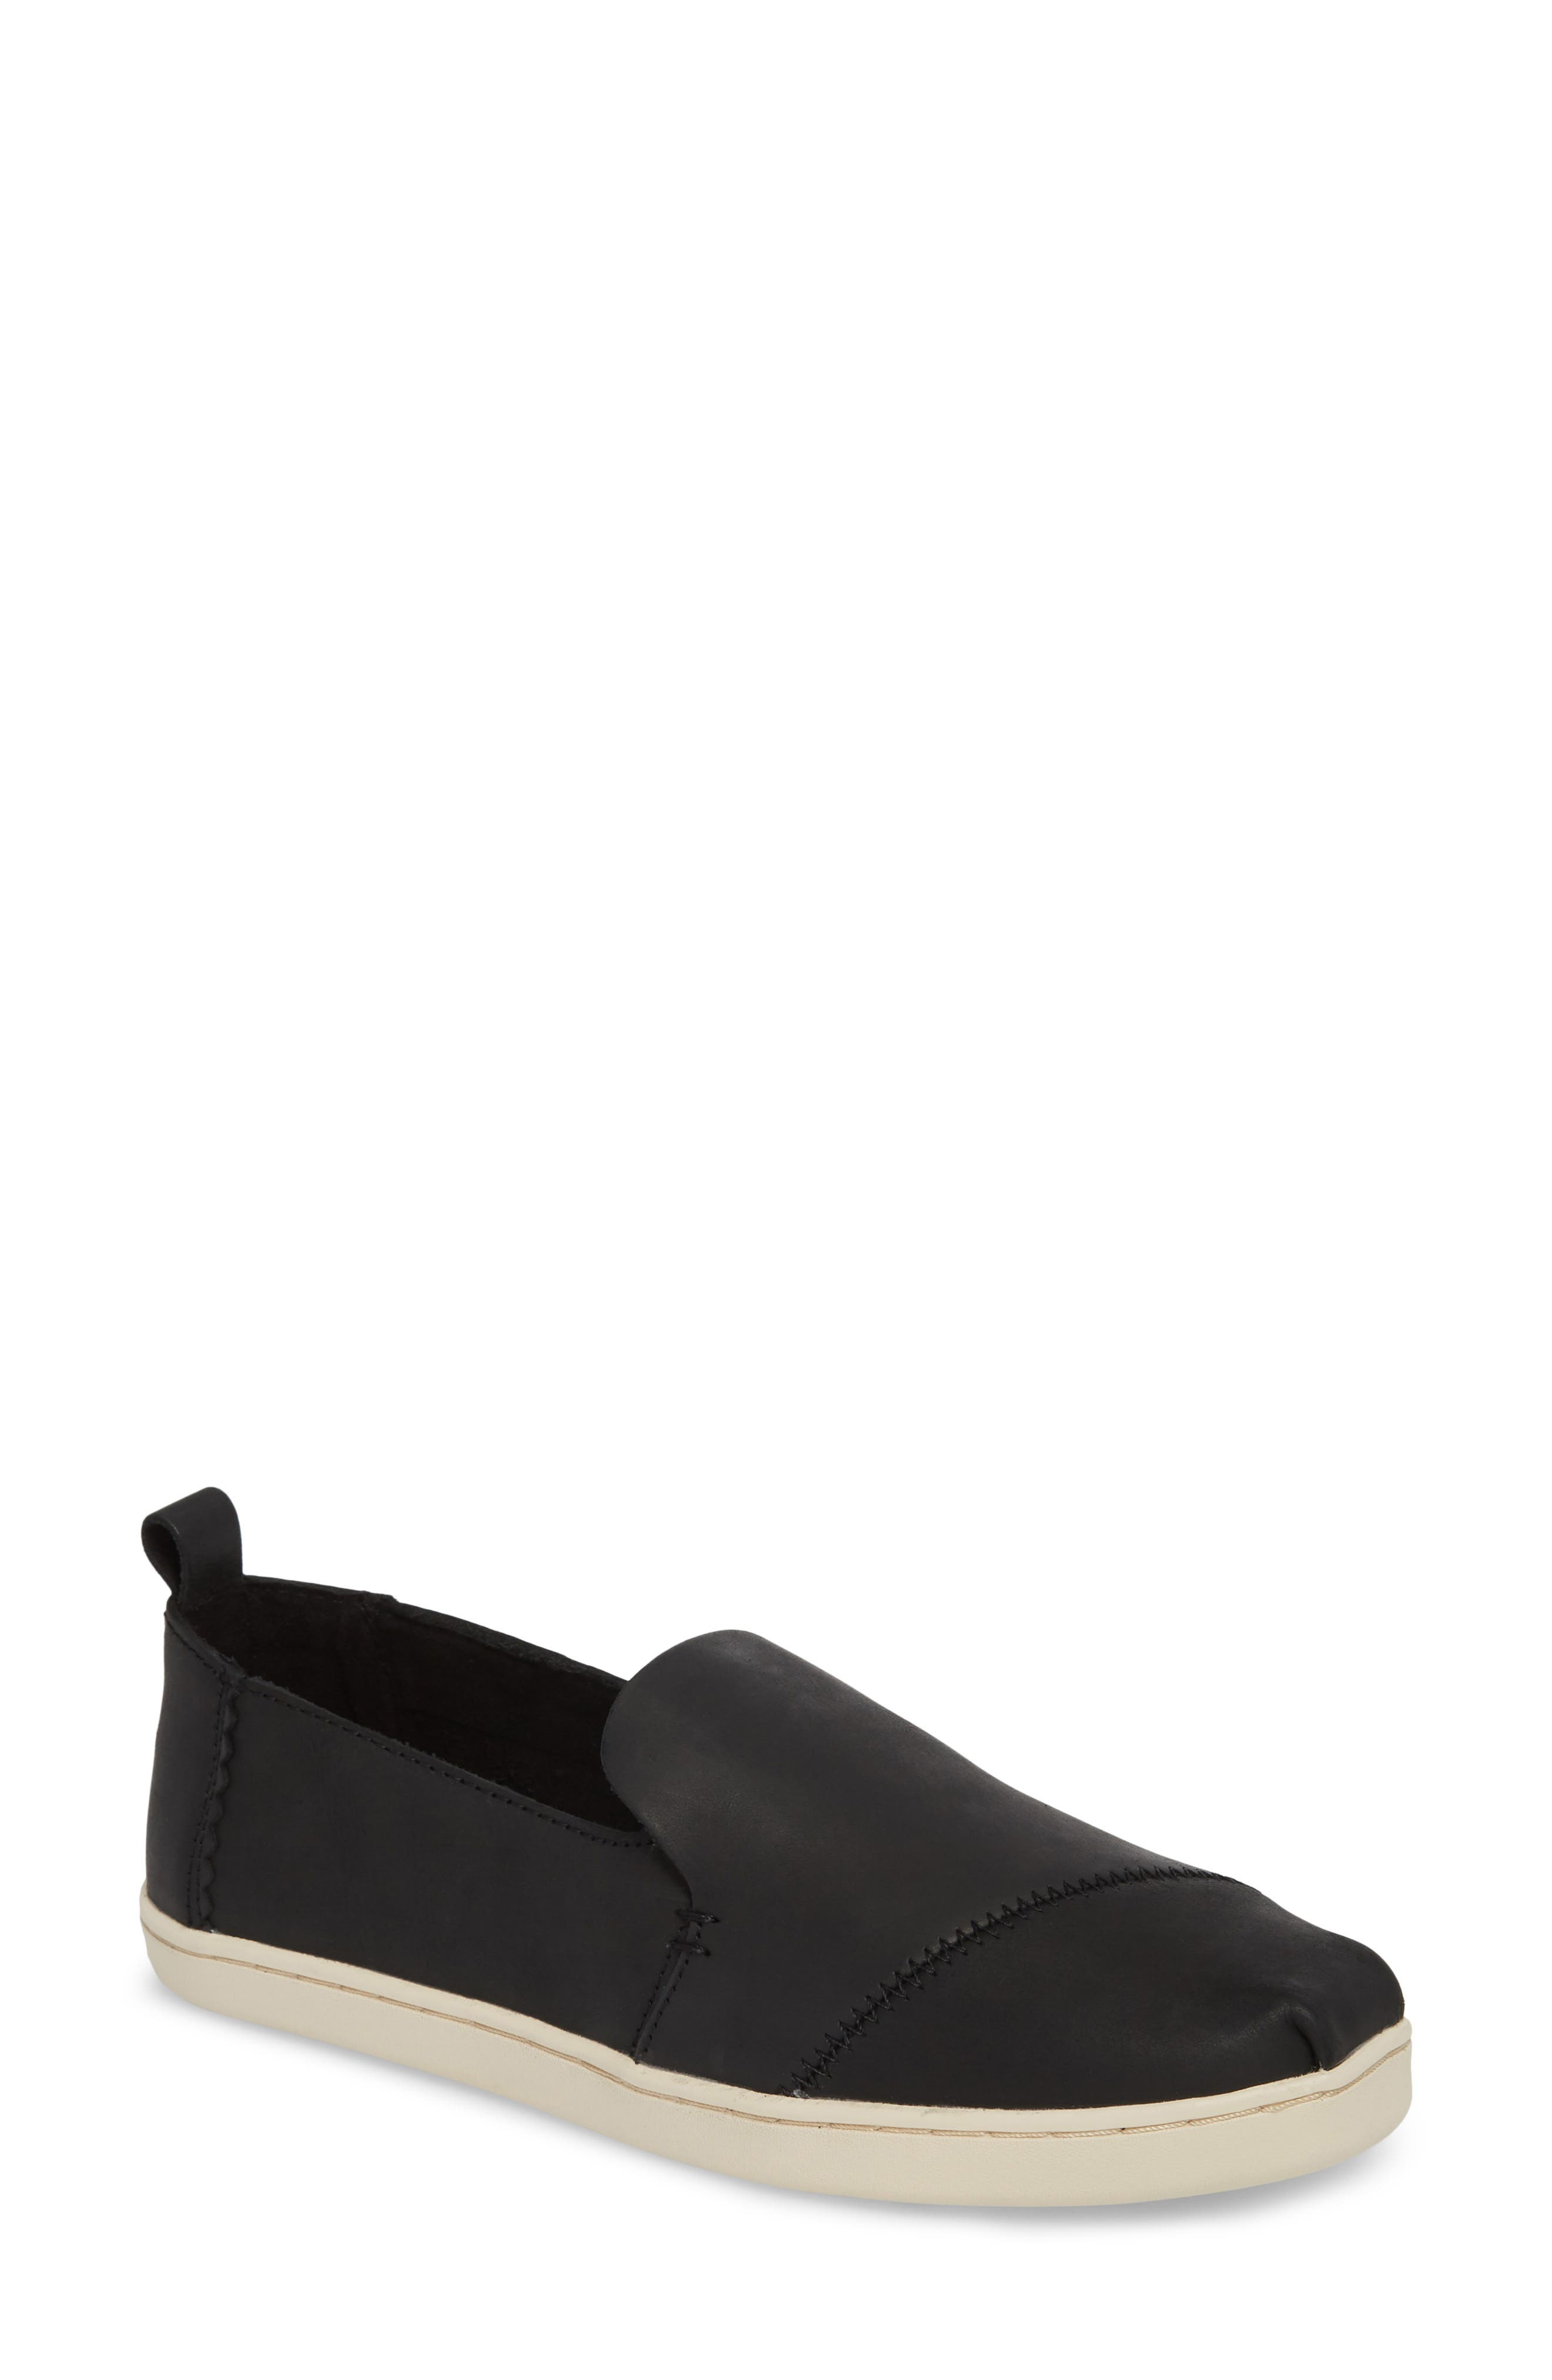 Deconstructed Alpargata Slip-On,                             Main thumbnail 1, color,                             BLACK LEATHER